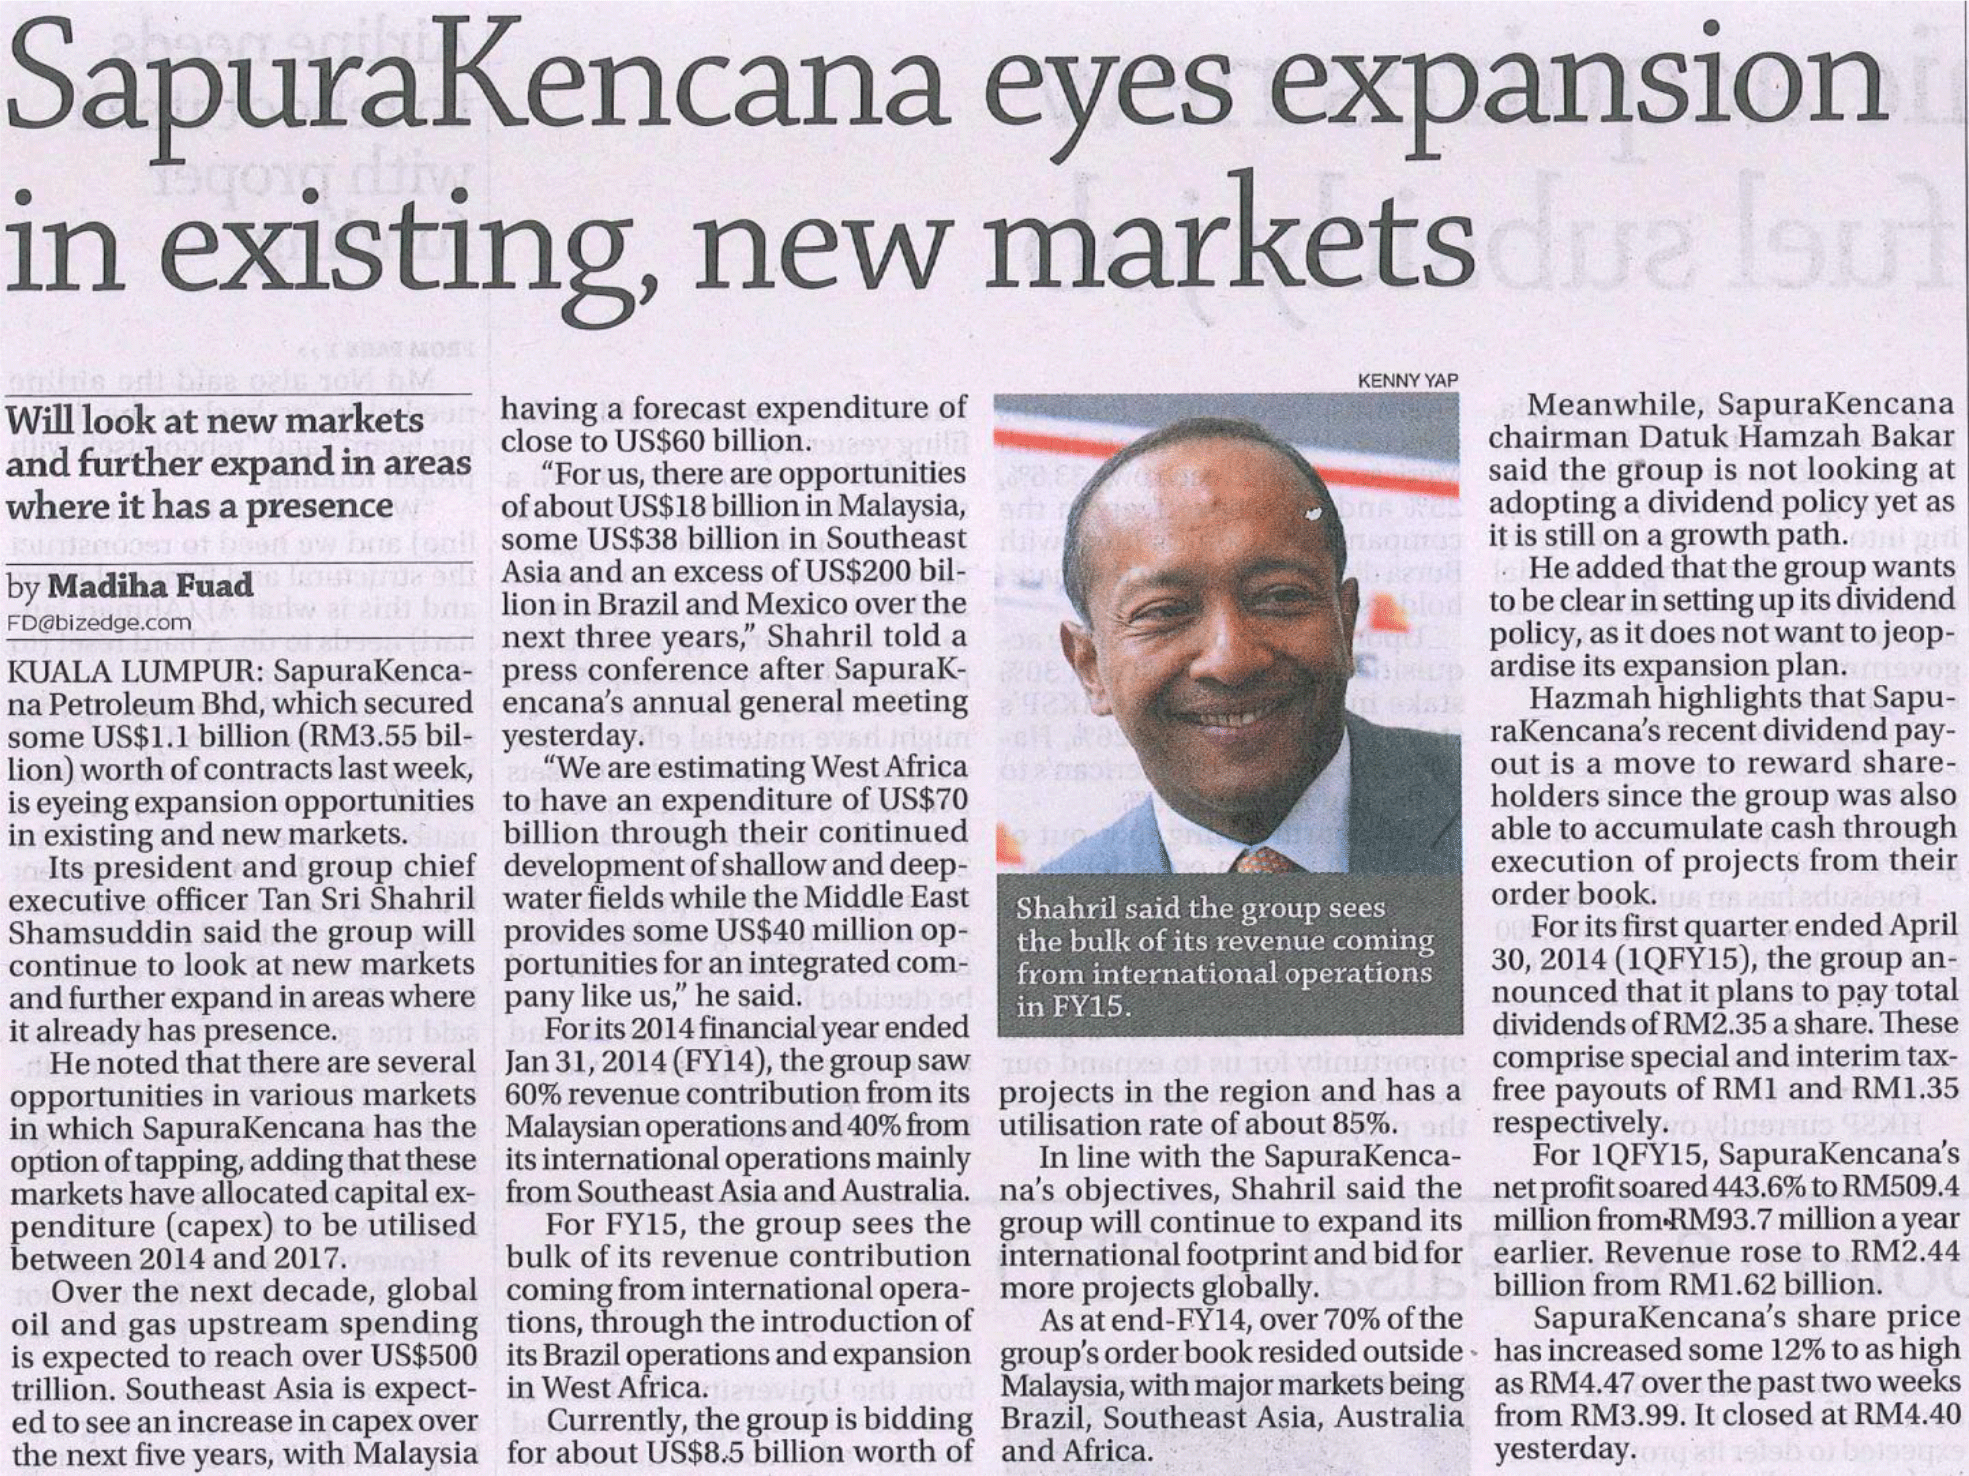 The-Edge---SapuraKencana-eyes-expansion-in-existing,-new-markets-(260614)